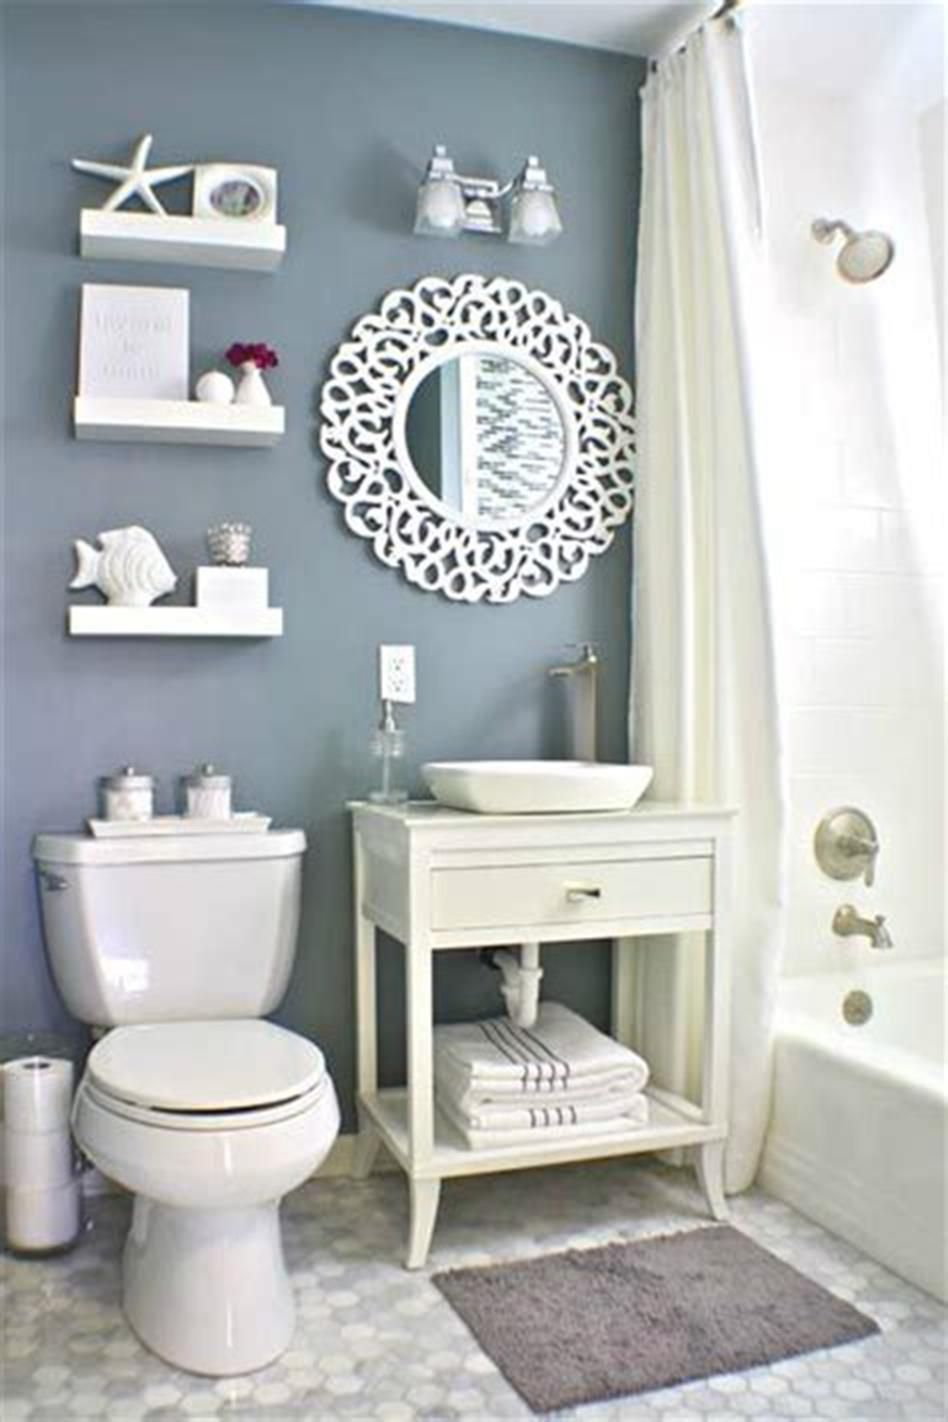 40 Best Color Schemes Bathroom Decorating Ideas on a ... on Small Bathroom Remodel Ideas 2019  id=20604